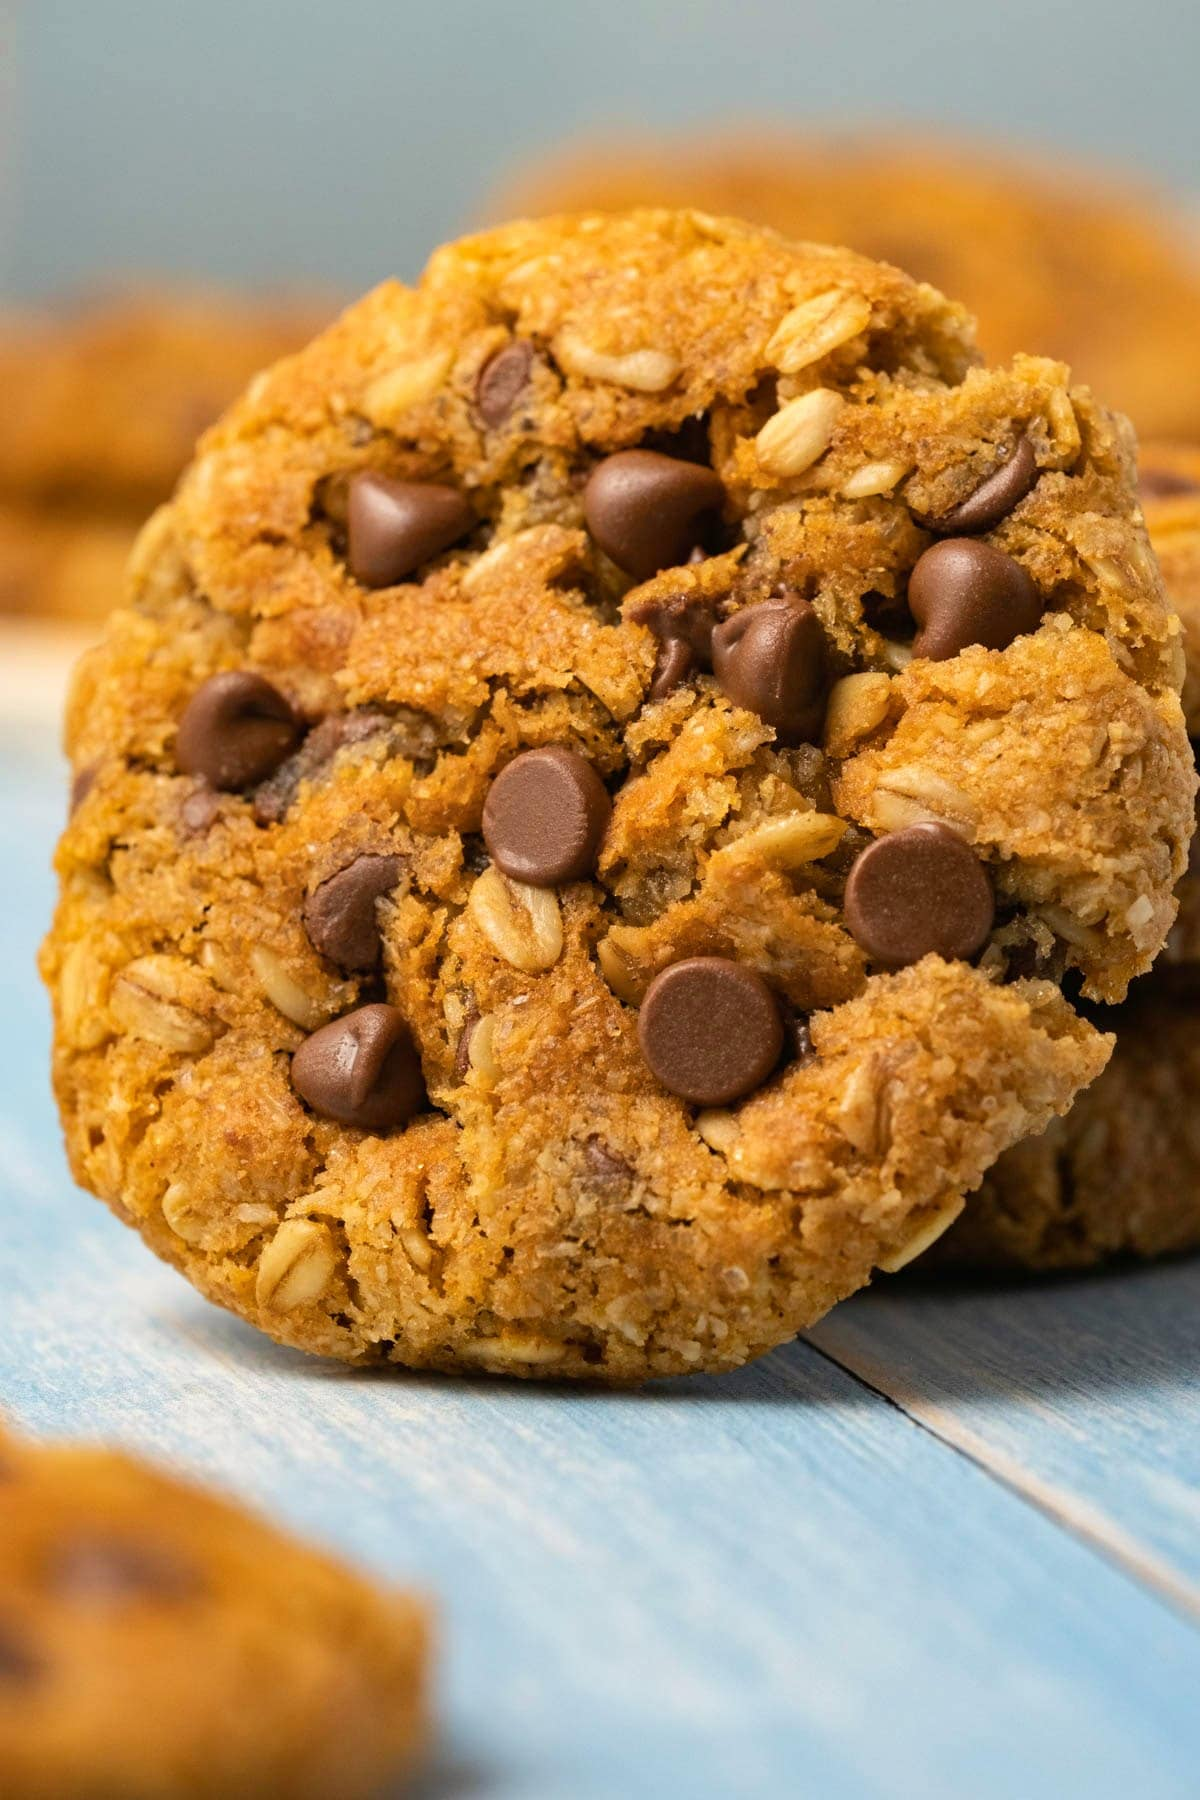 An oatmeal chocolate chip cookie leaning against a stack of cookies.